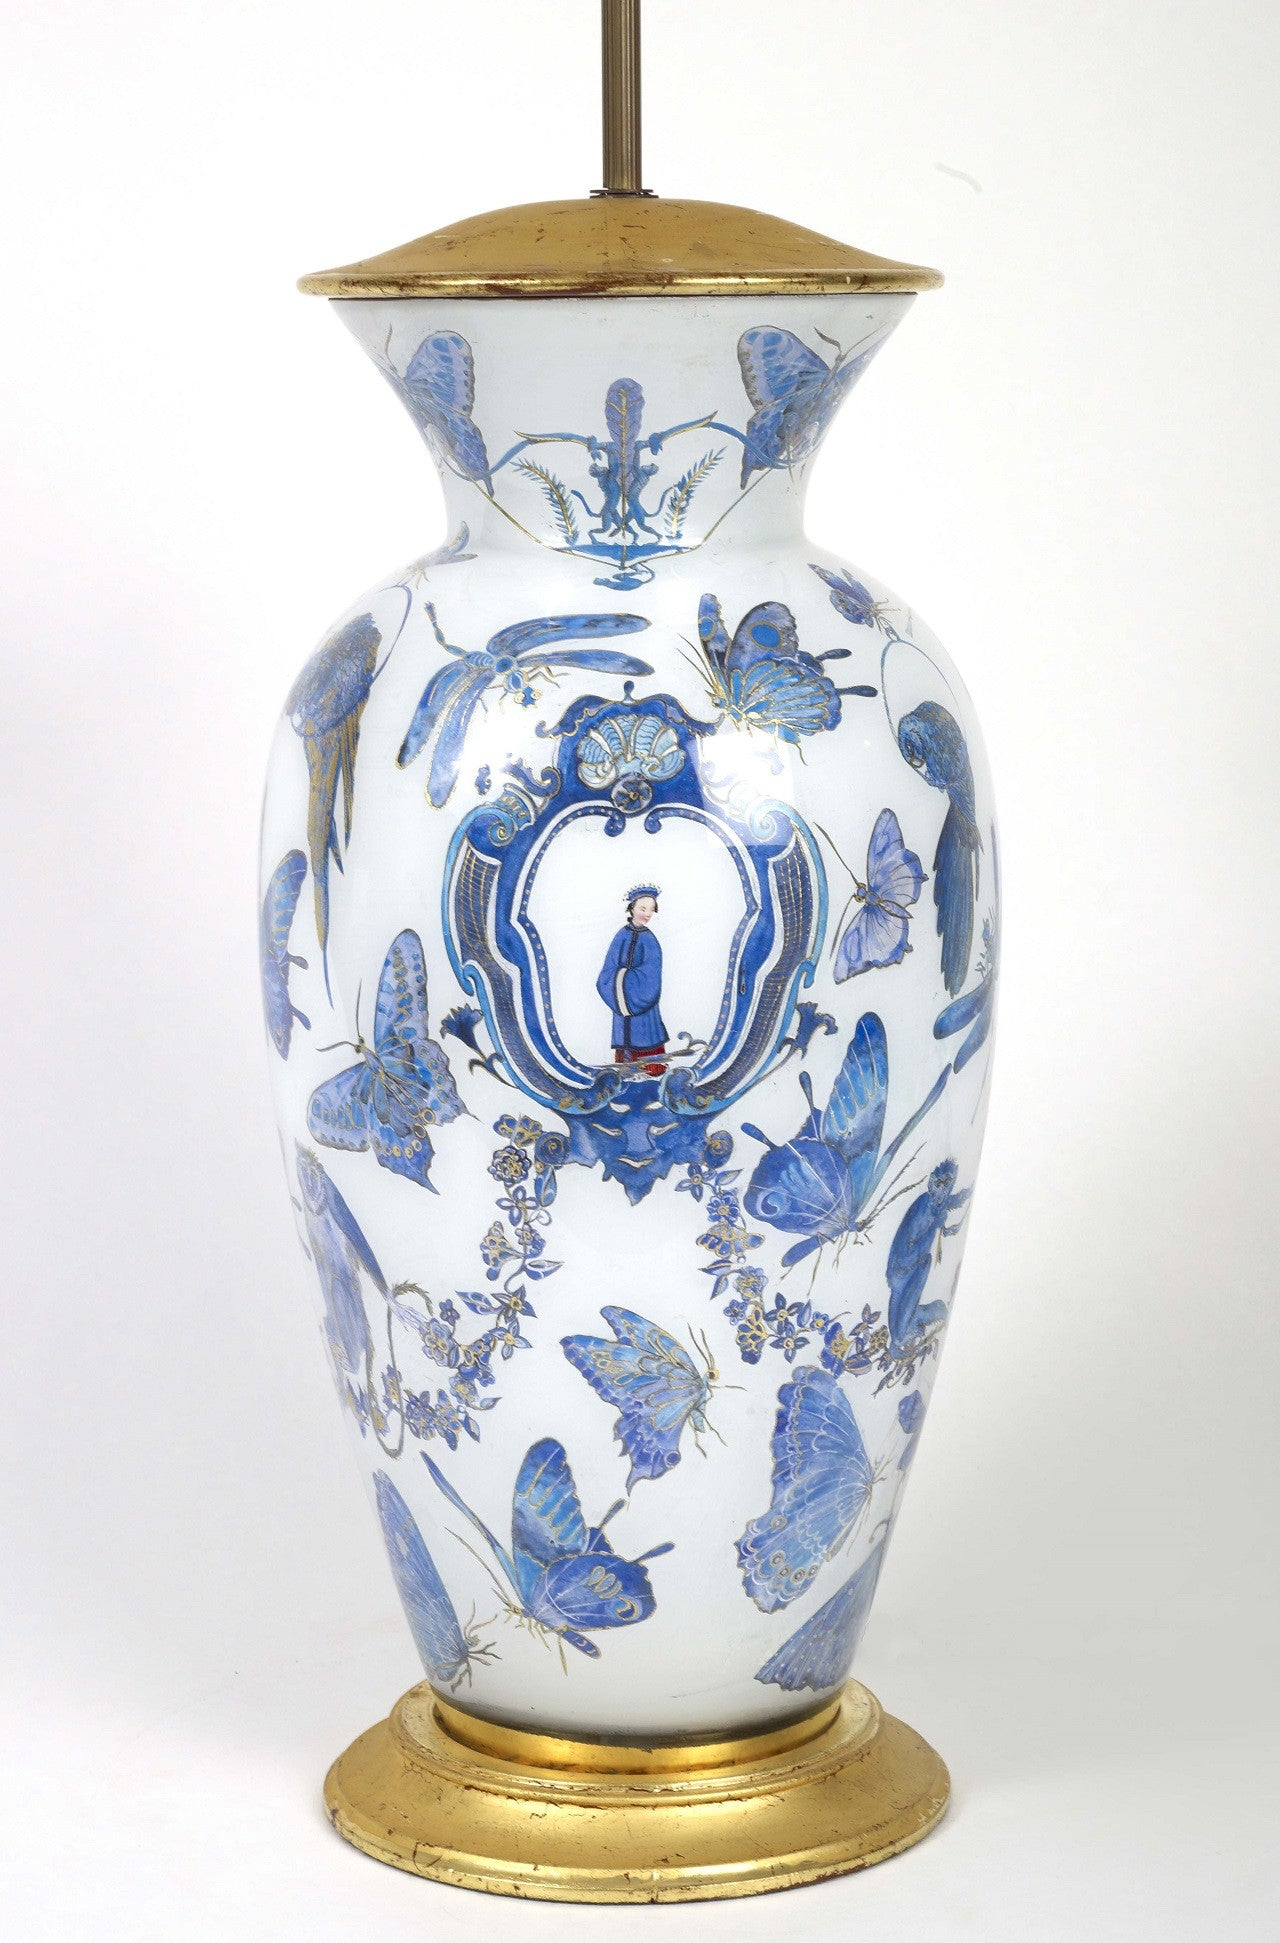 Penelope Sitwell decalcomania white, blue and gilt Chinoiserie decorated baluster Vase Lamp